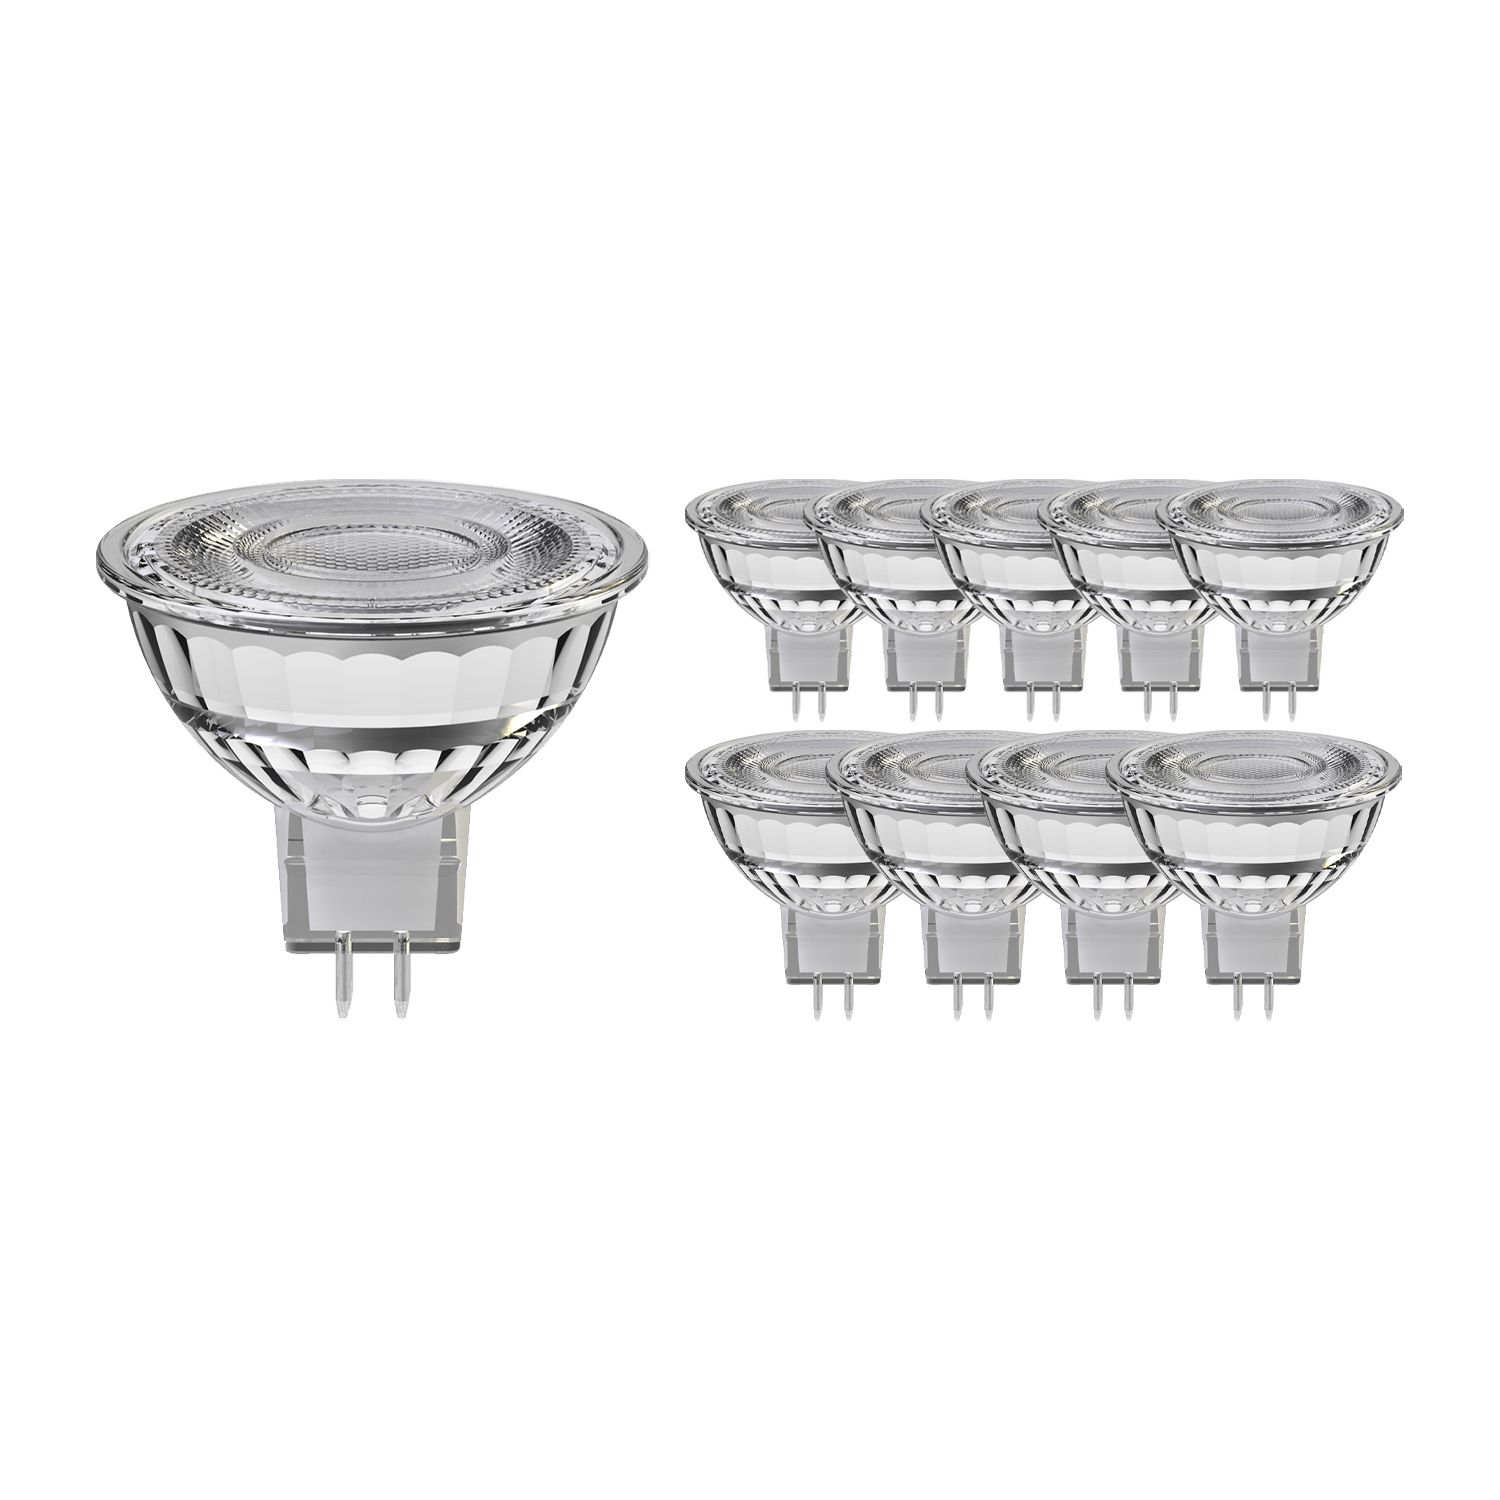 Multipack 10x Noxion LED Spot GU5.3 8W 830 60D 660lm | Dimmable - Replacer for 50W